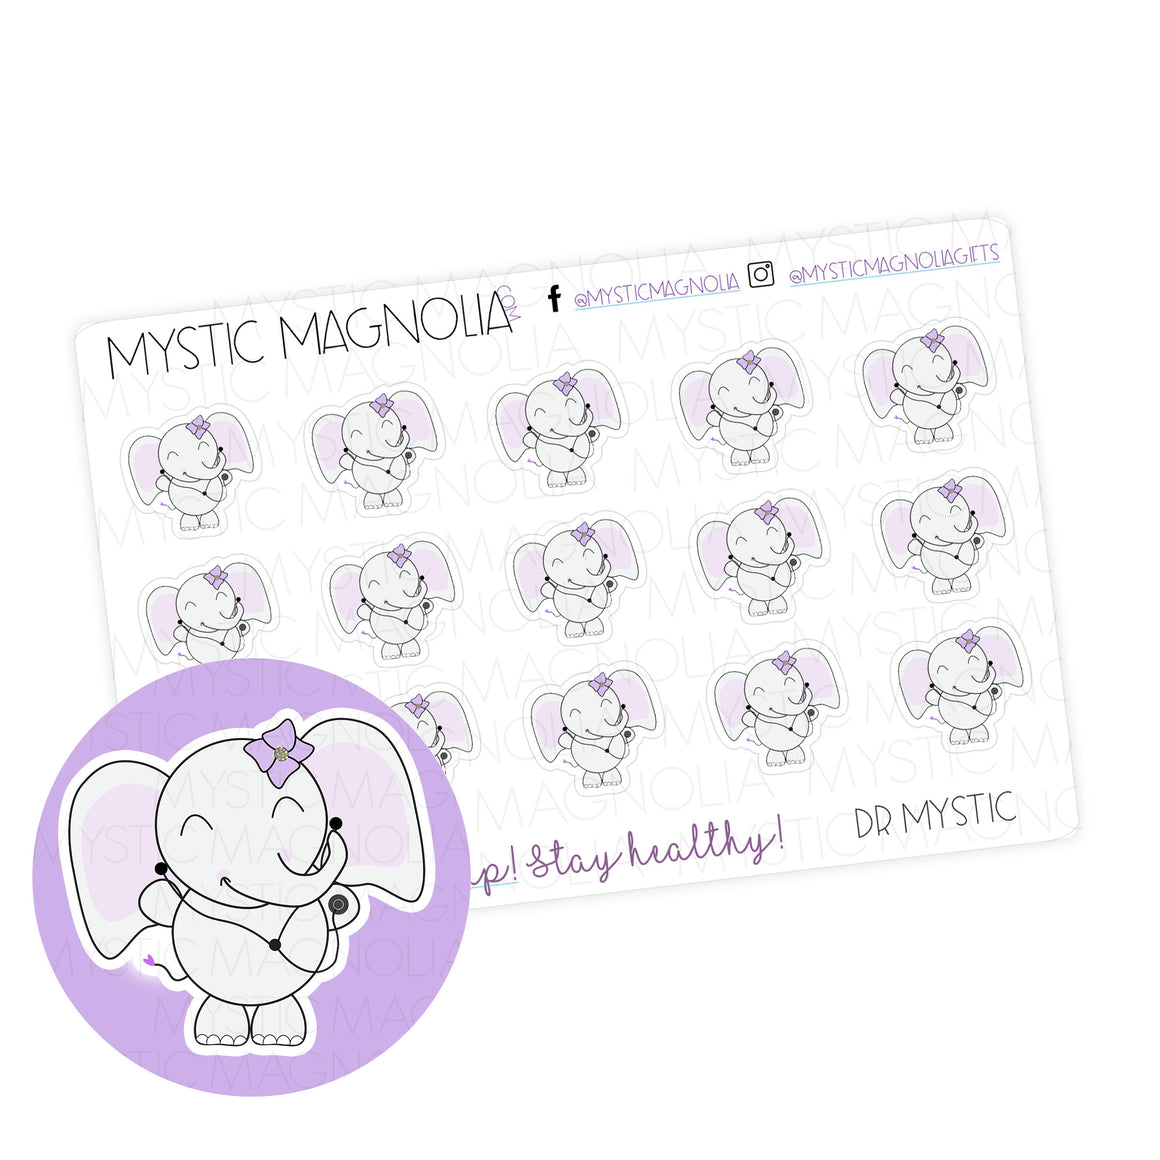 Dr Mystic Planner Sticker Sheet